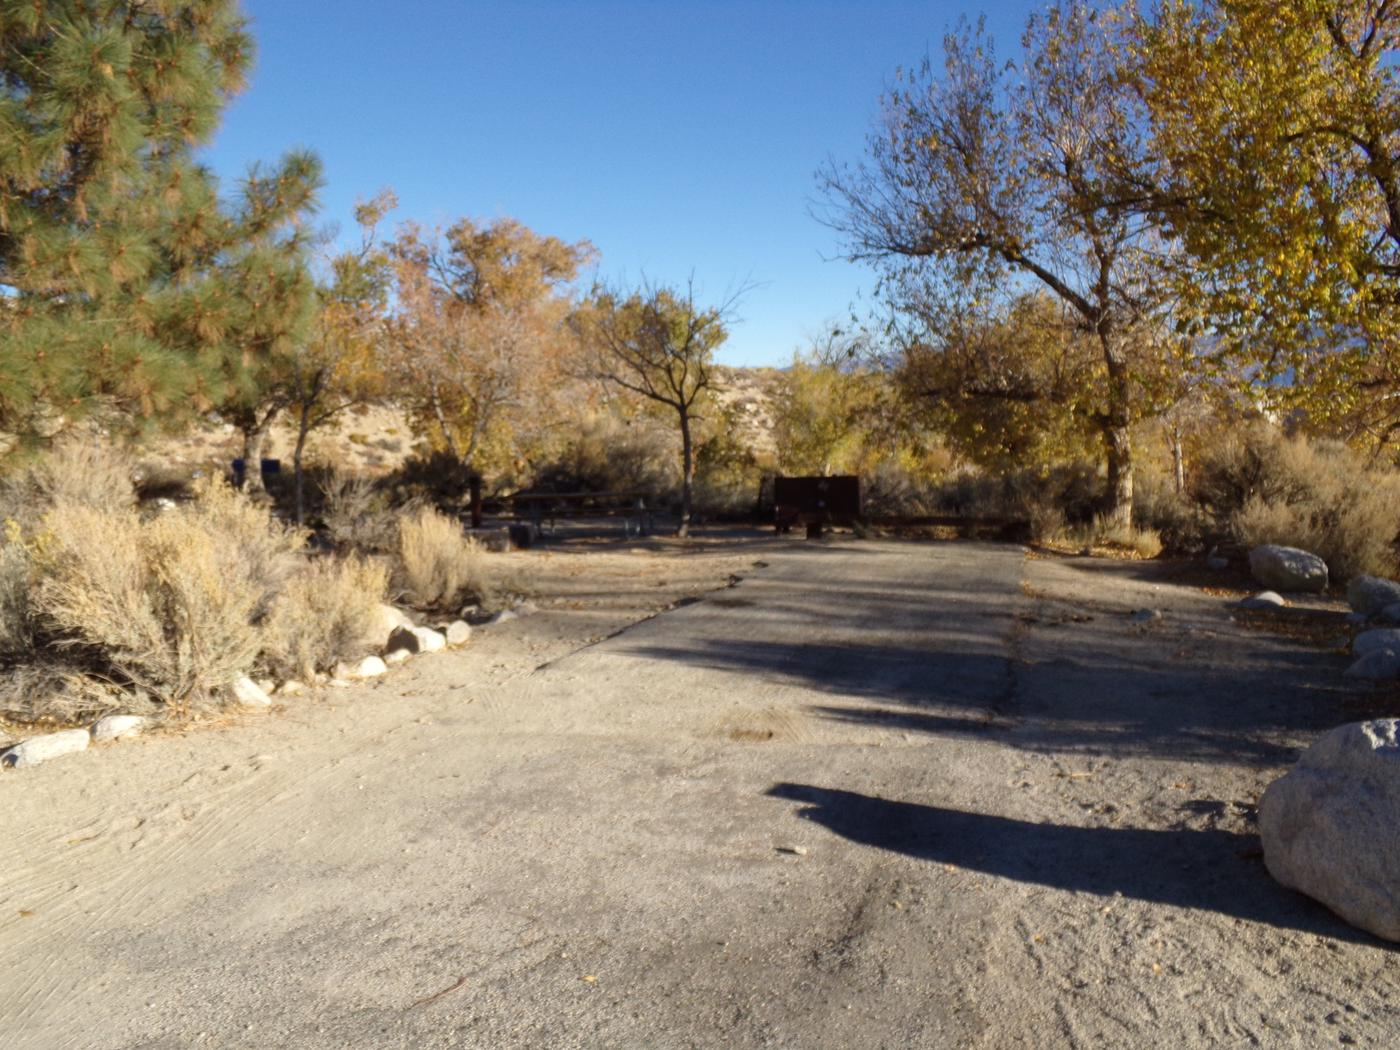 Parking space and entrance to site #38, Lone Pine Campground.